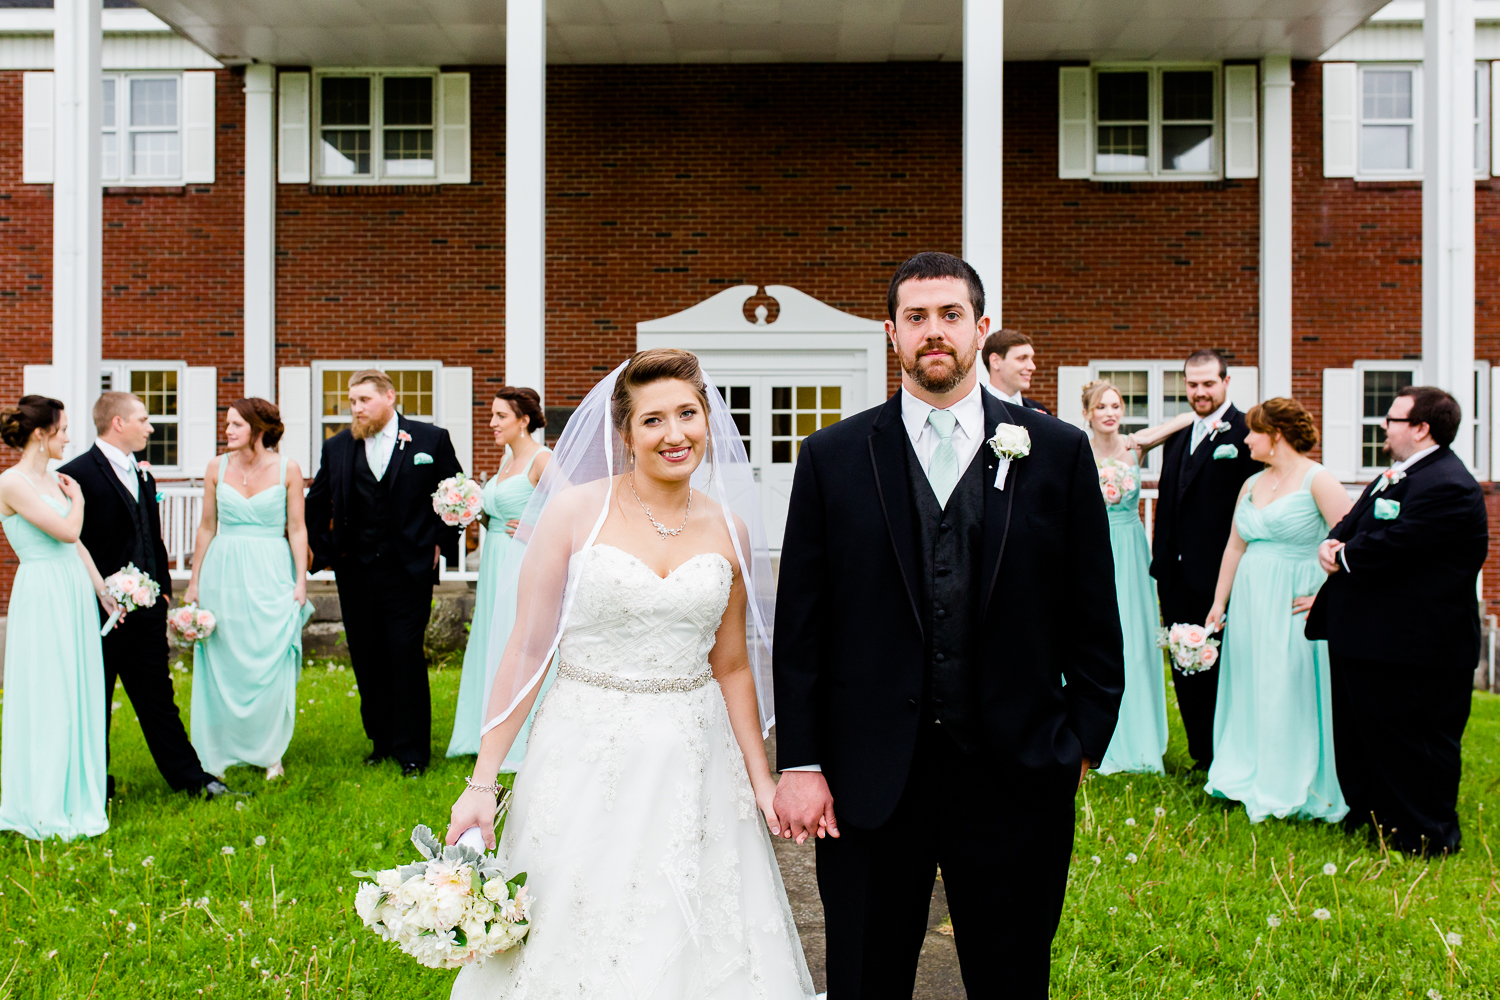 Bride and groom stand in front of the their bridal party. The bridal party mingles in the background while the bride and groom look at the camera. They are in front of a red brick building with a white awning.